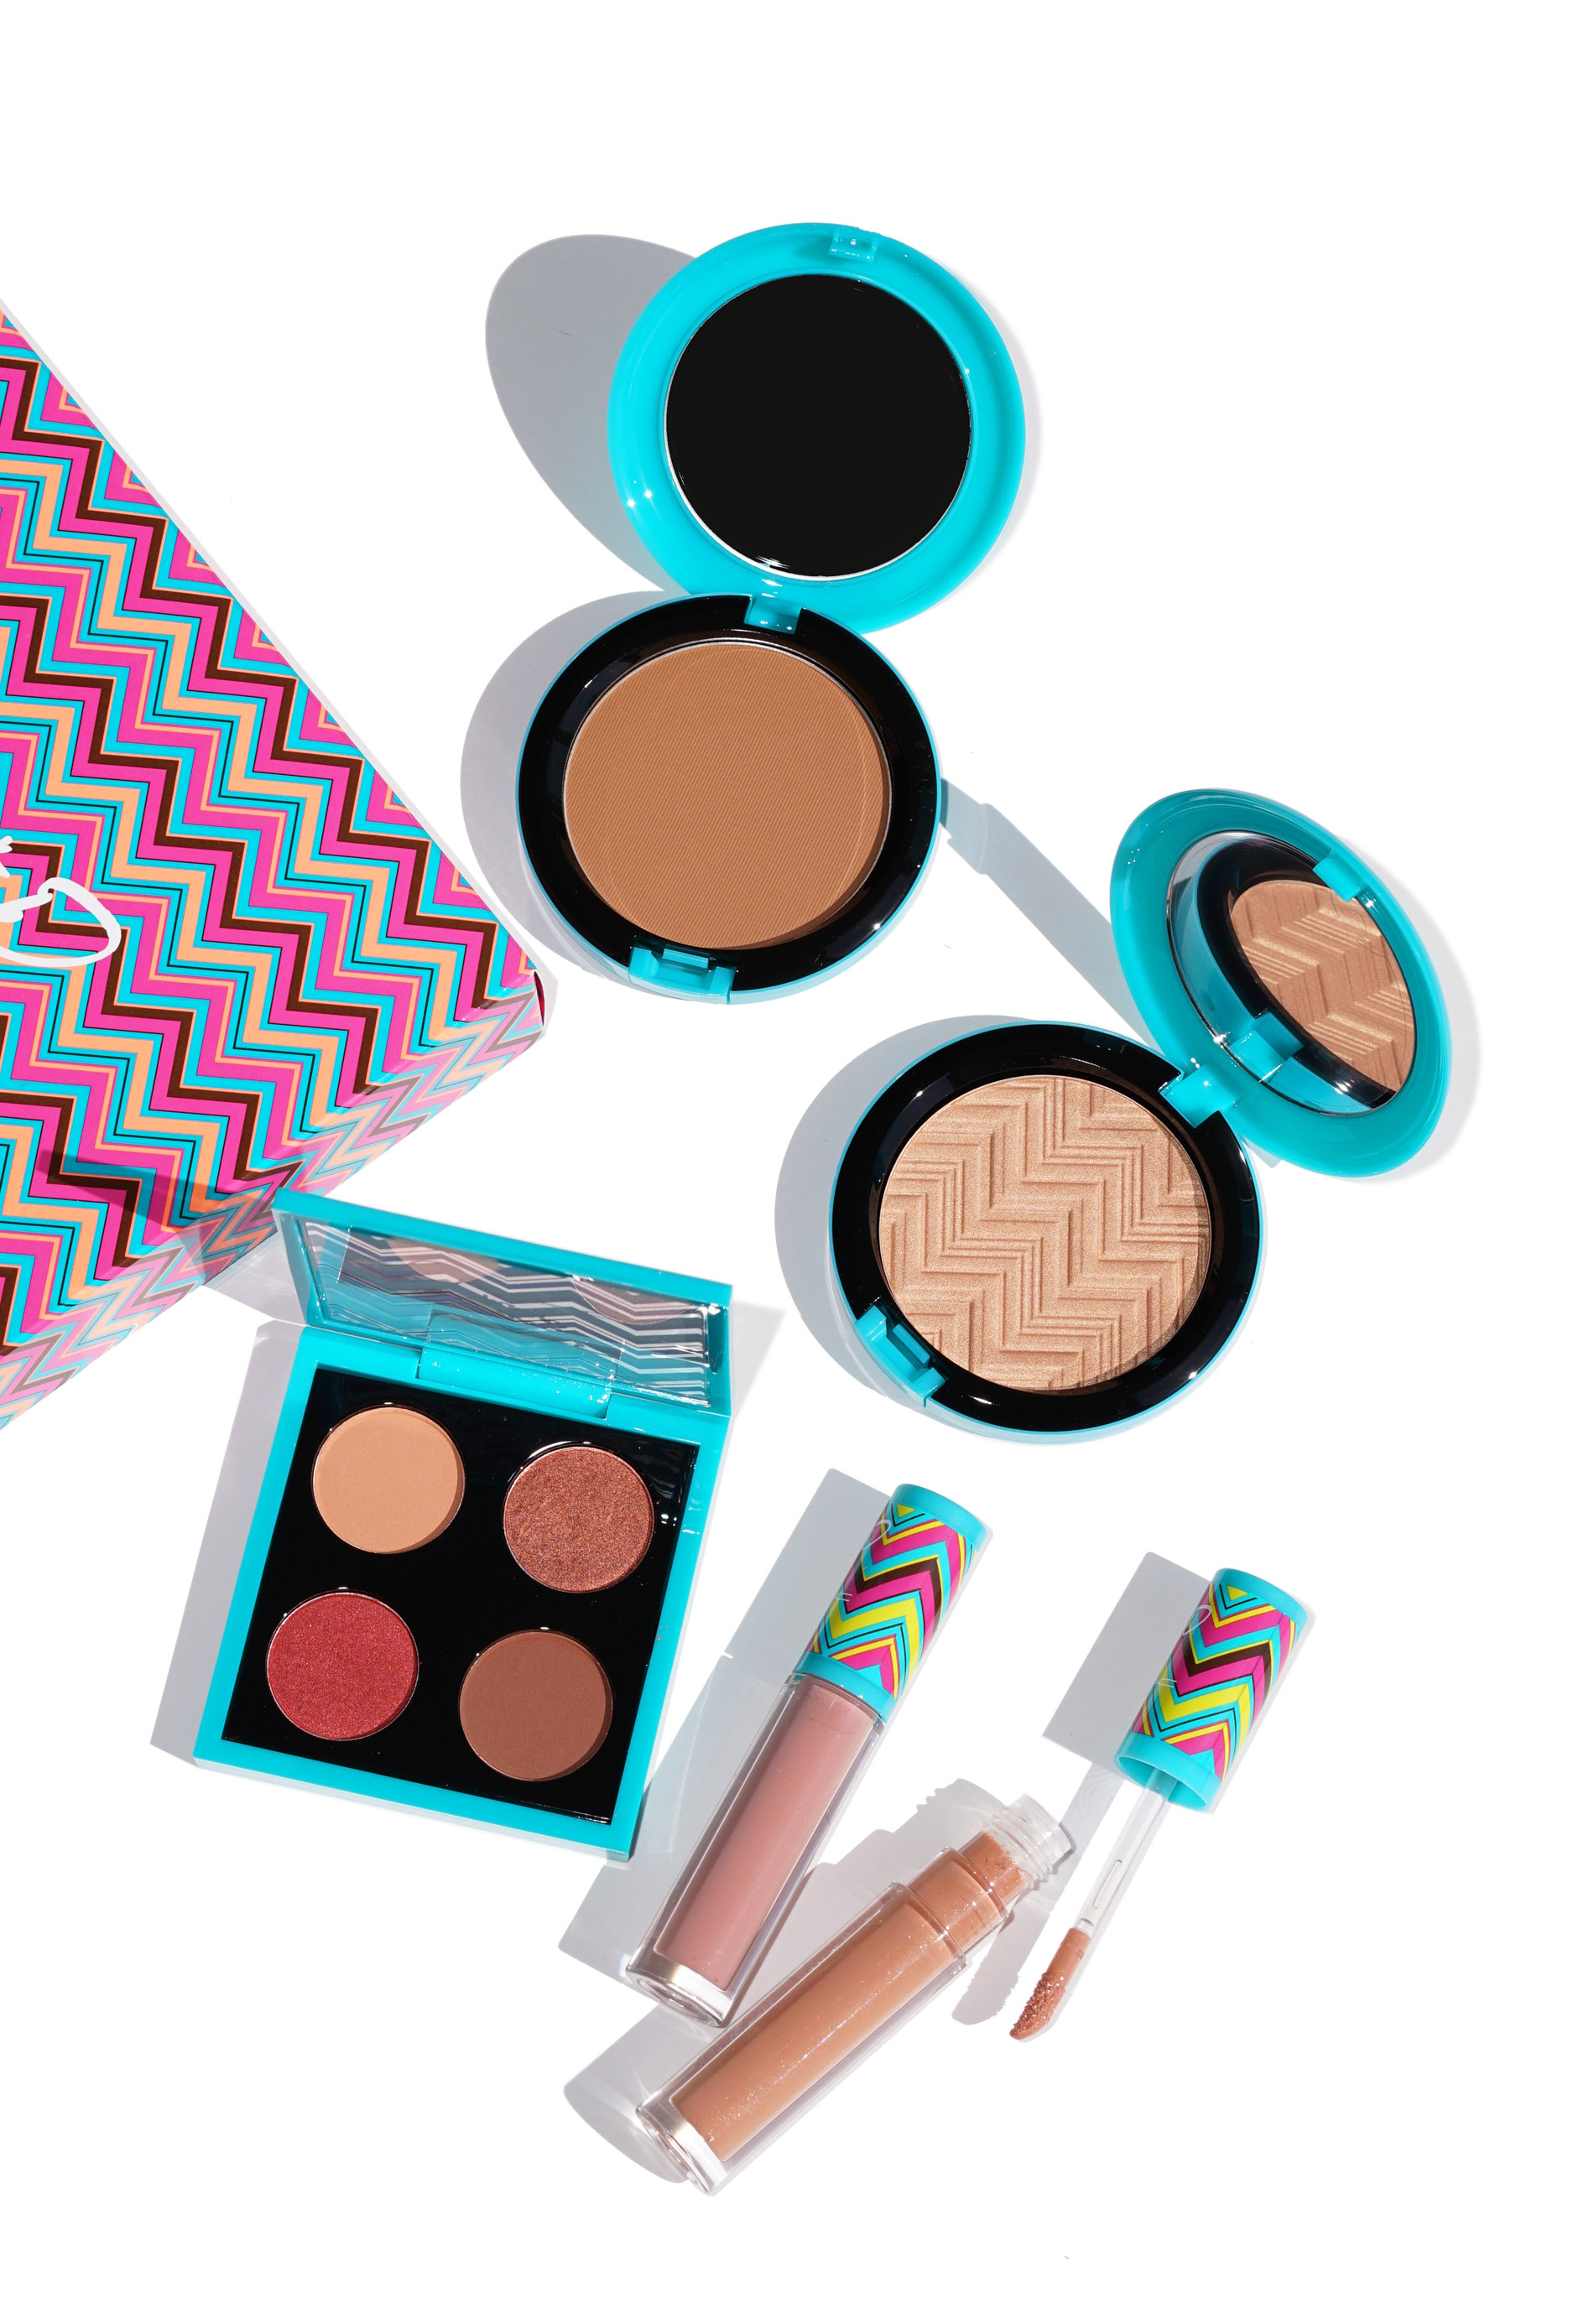 Mac patrick starrr summer starrr full face kit hot and heavy face mac patrick starrr summer starrr collection review swatches the beauty look book voltagebd Choice Image